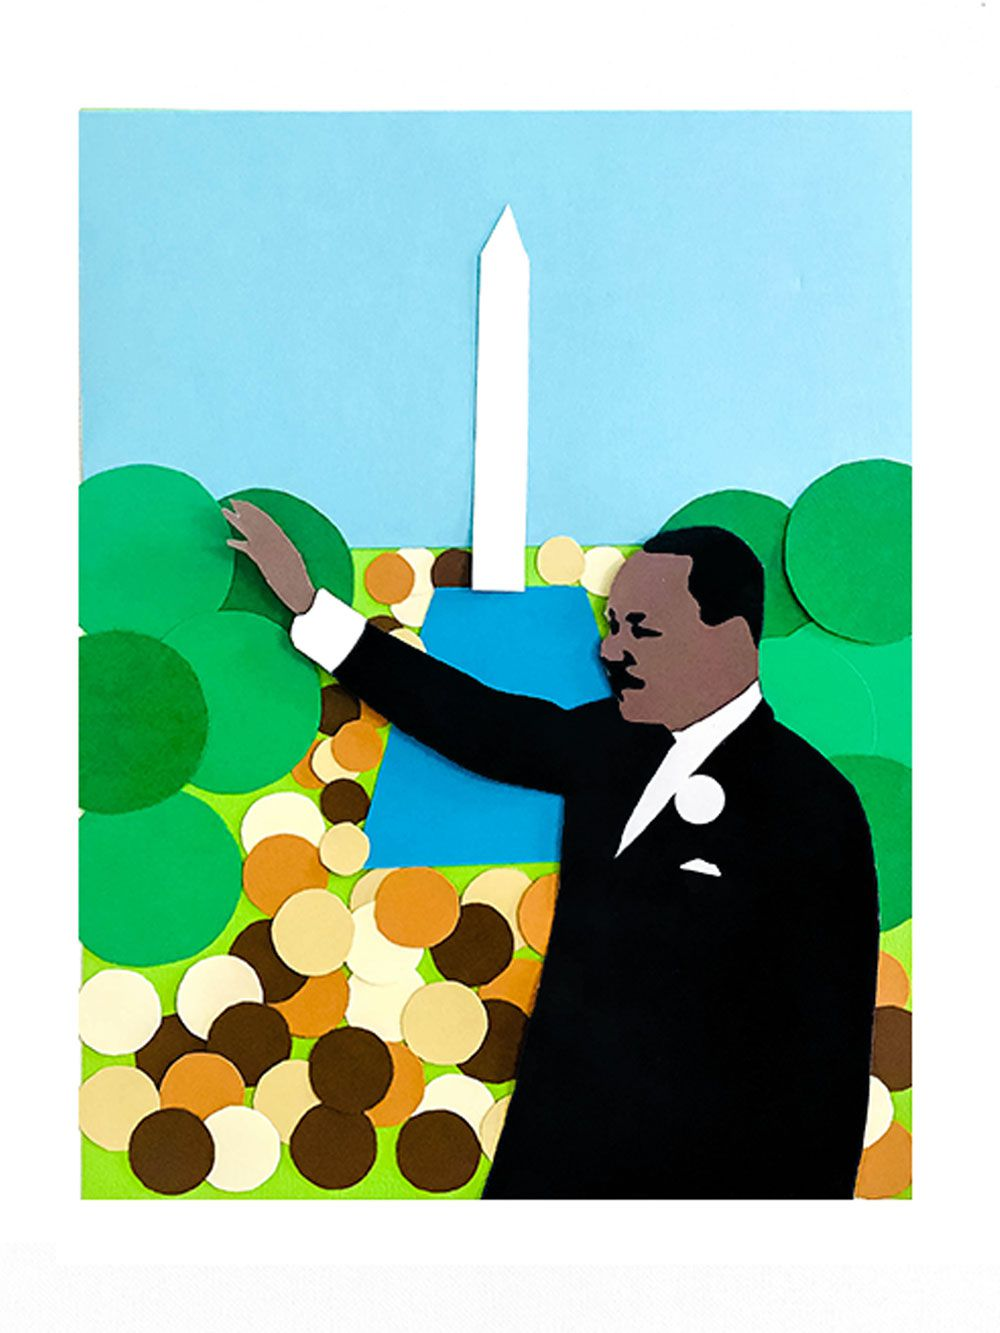 Martin Luther King Jr waving at crowd in collage.